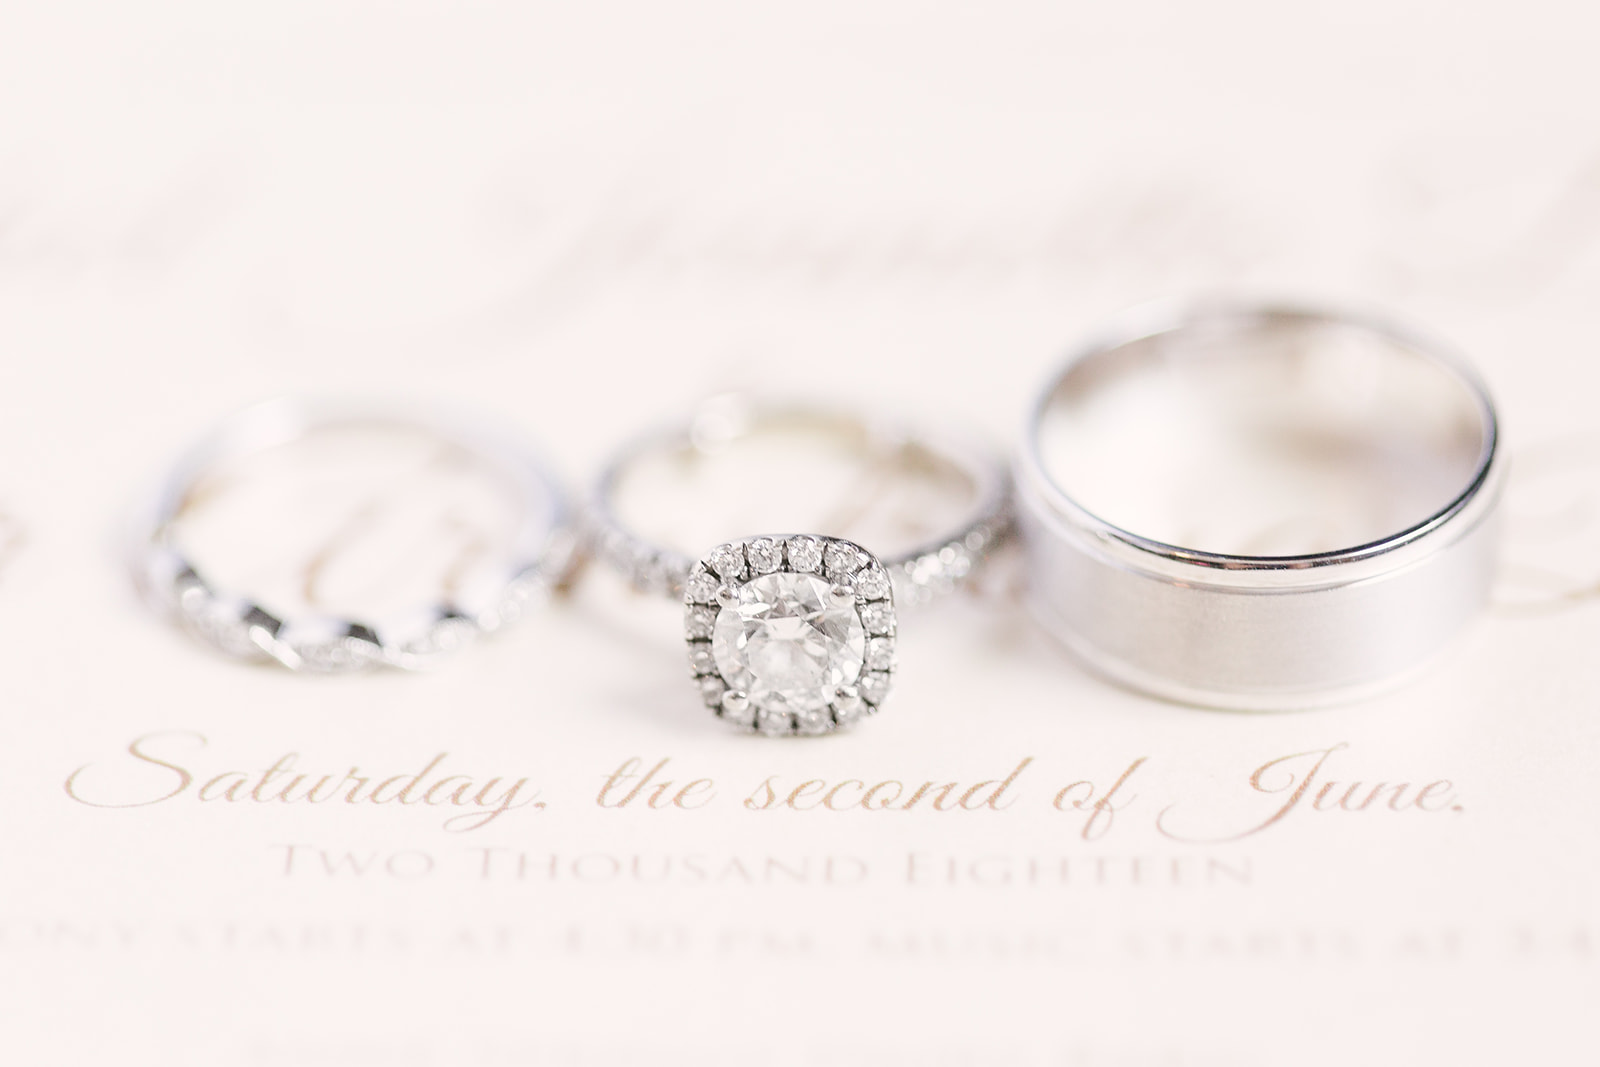 Detail shot of bridal rings captured by Paige Ryan Photography for a spring wedding at The Diary Barn